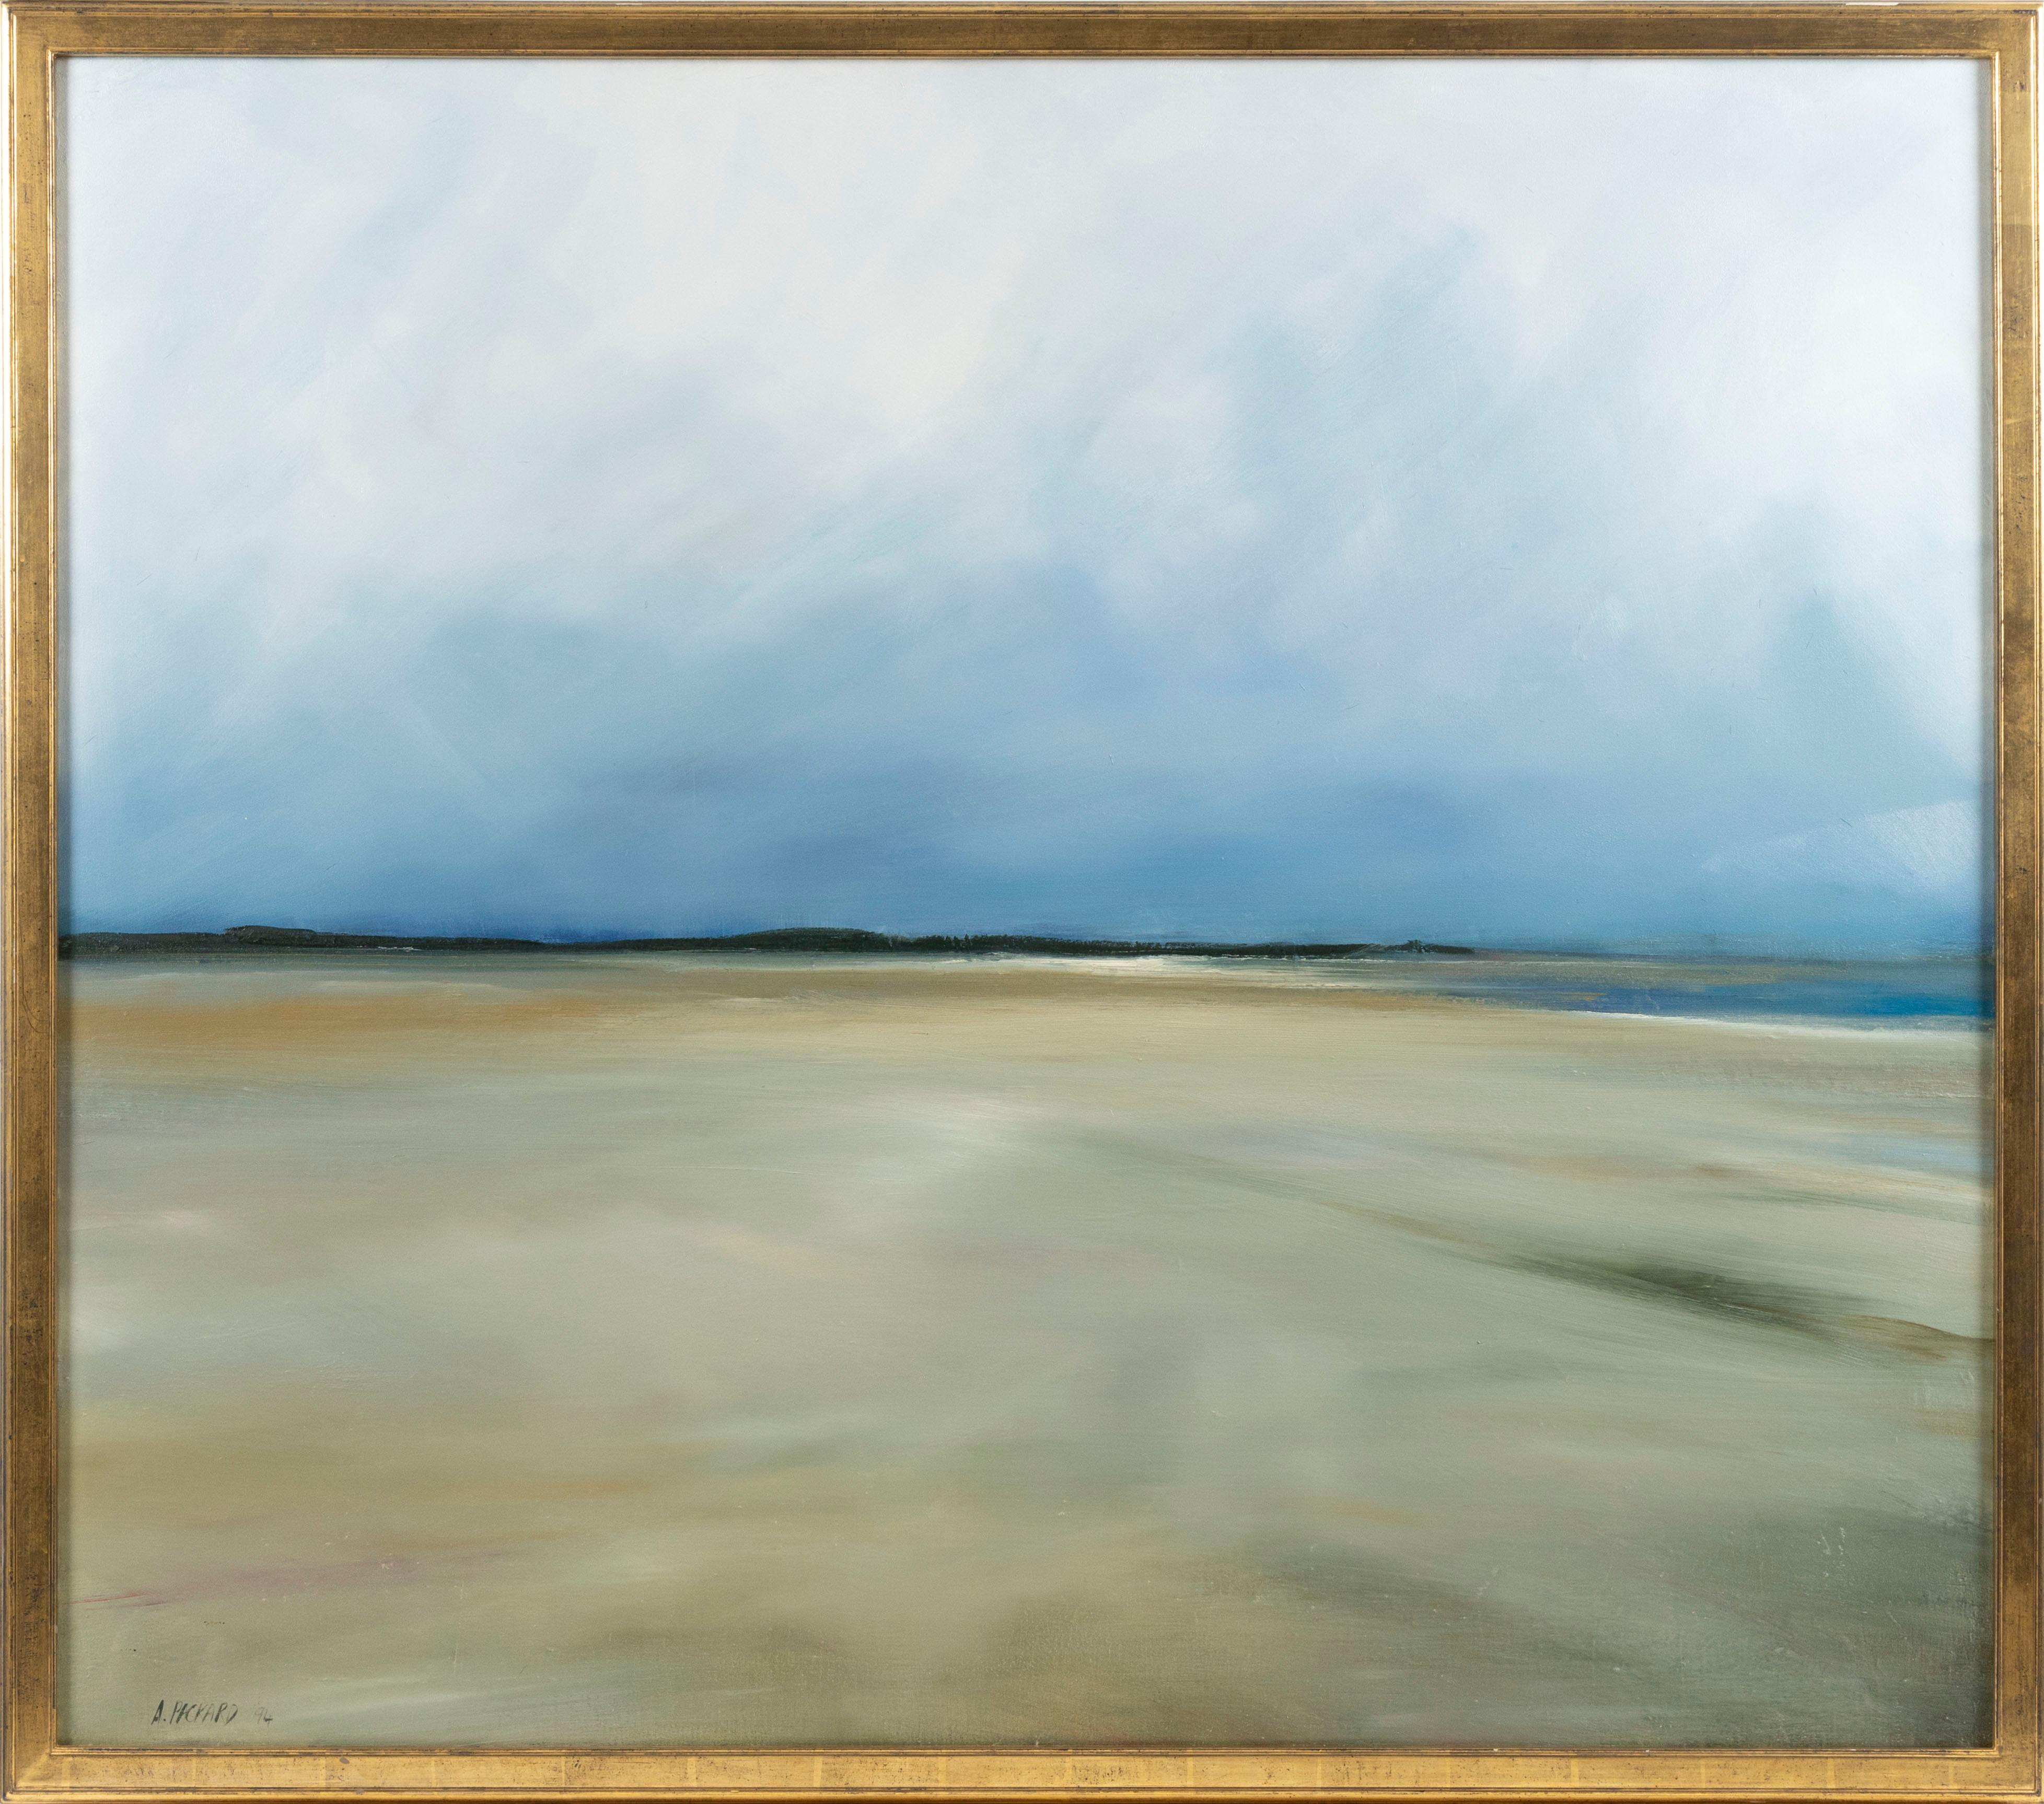 "ANNE PACKARD , Massachusetts/New Jersey, b. 1933, Seascape., Oil on canvas, 42.5"" x 48"". Framed 45.5"" x 51""."